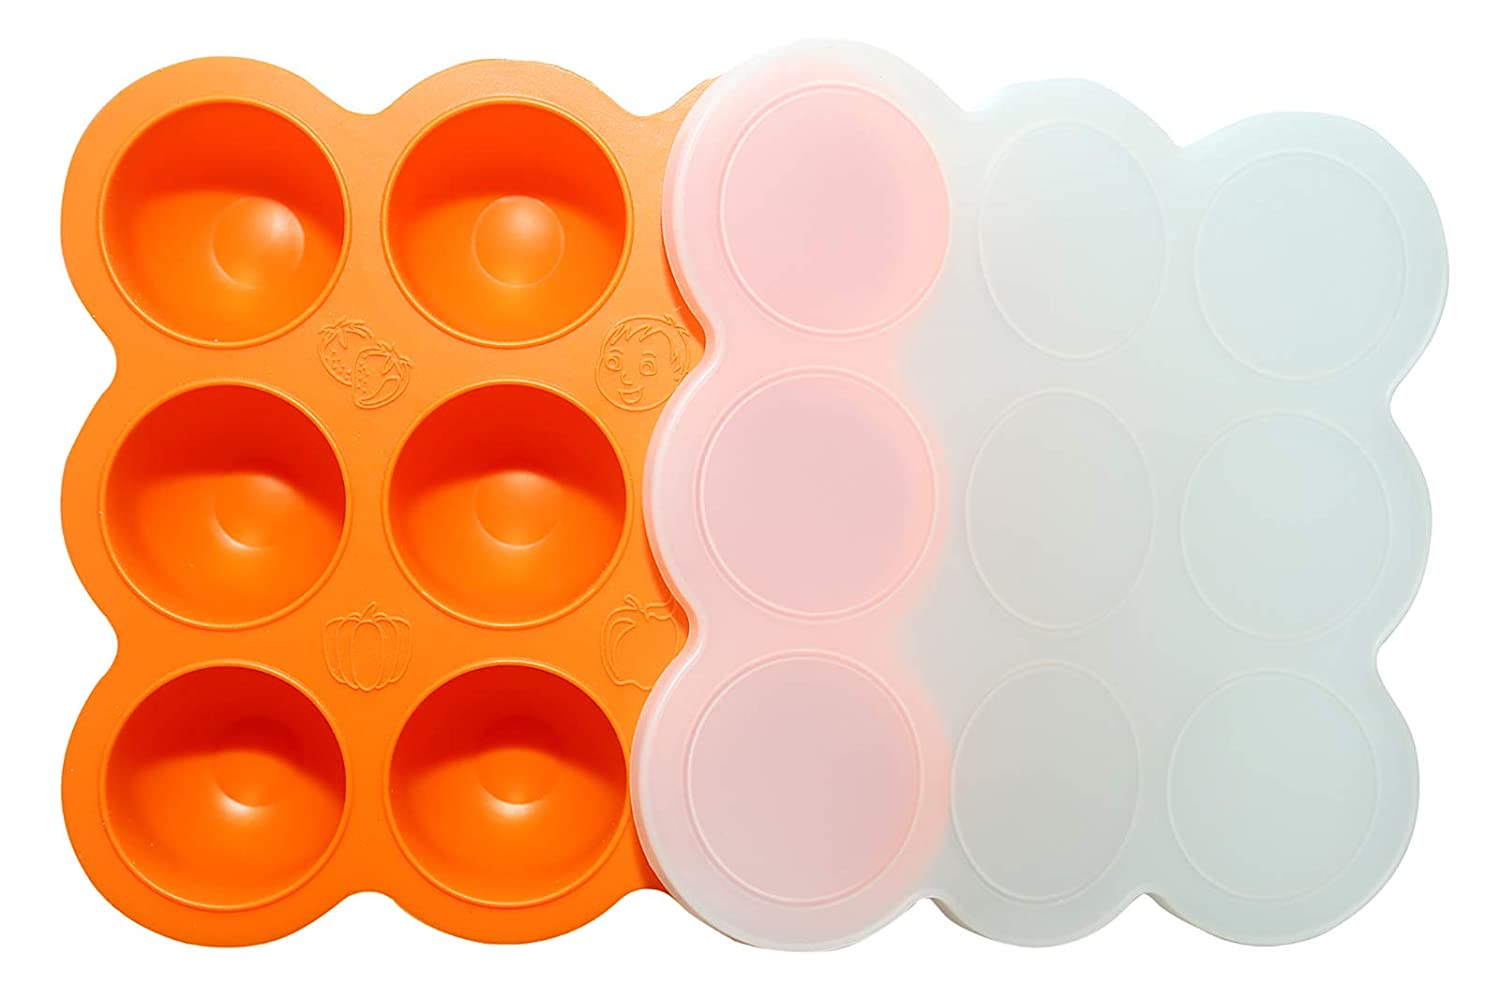 Silicone Baby Food Storage Containers, Freezer Trays with Lids for Snacks, Vegetable & Fruit Purees Storage, 100% Food-Grade Silicone, BPA Free, Microwave & Dishwasher Safe